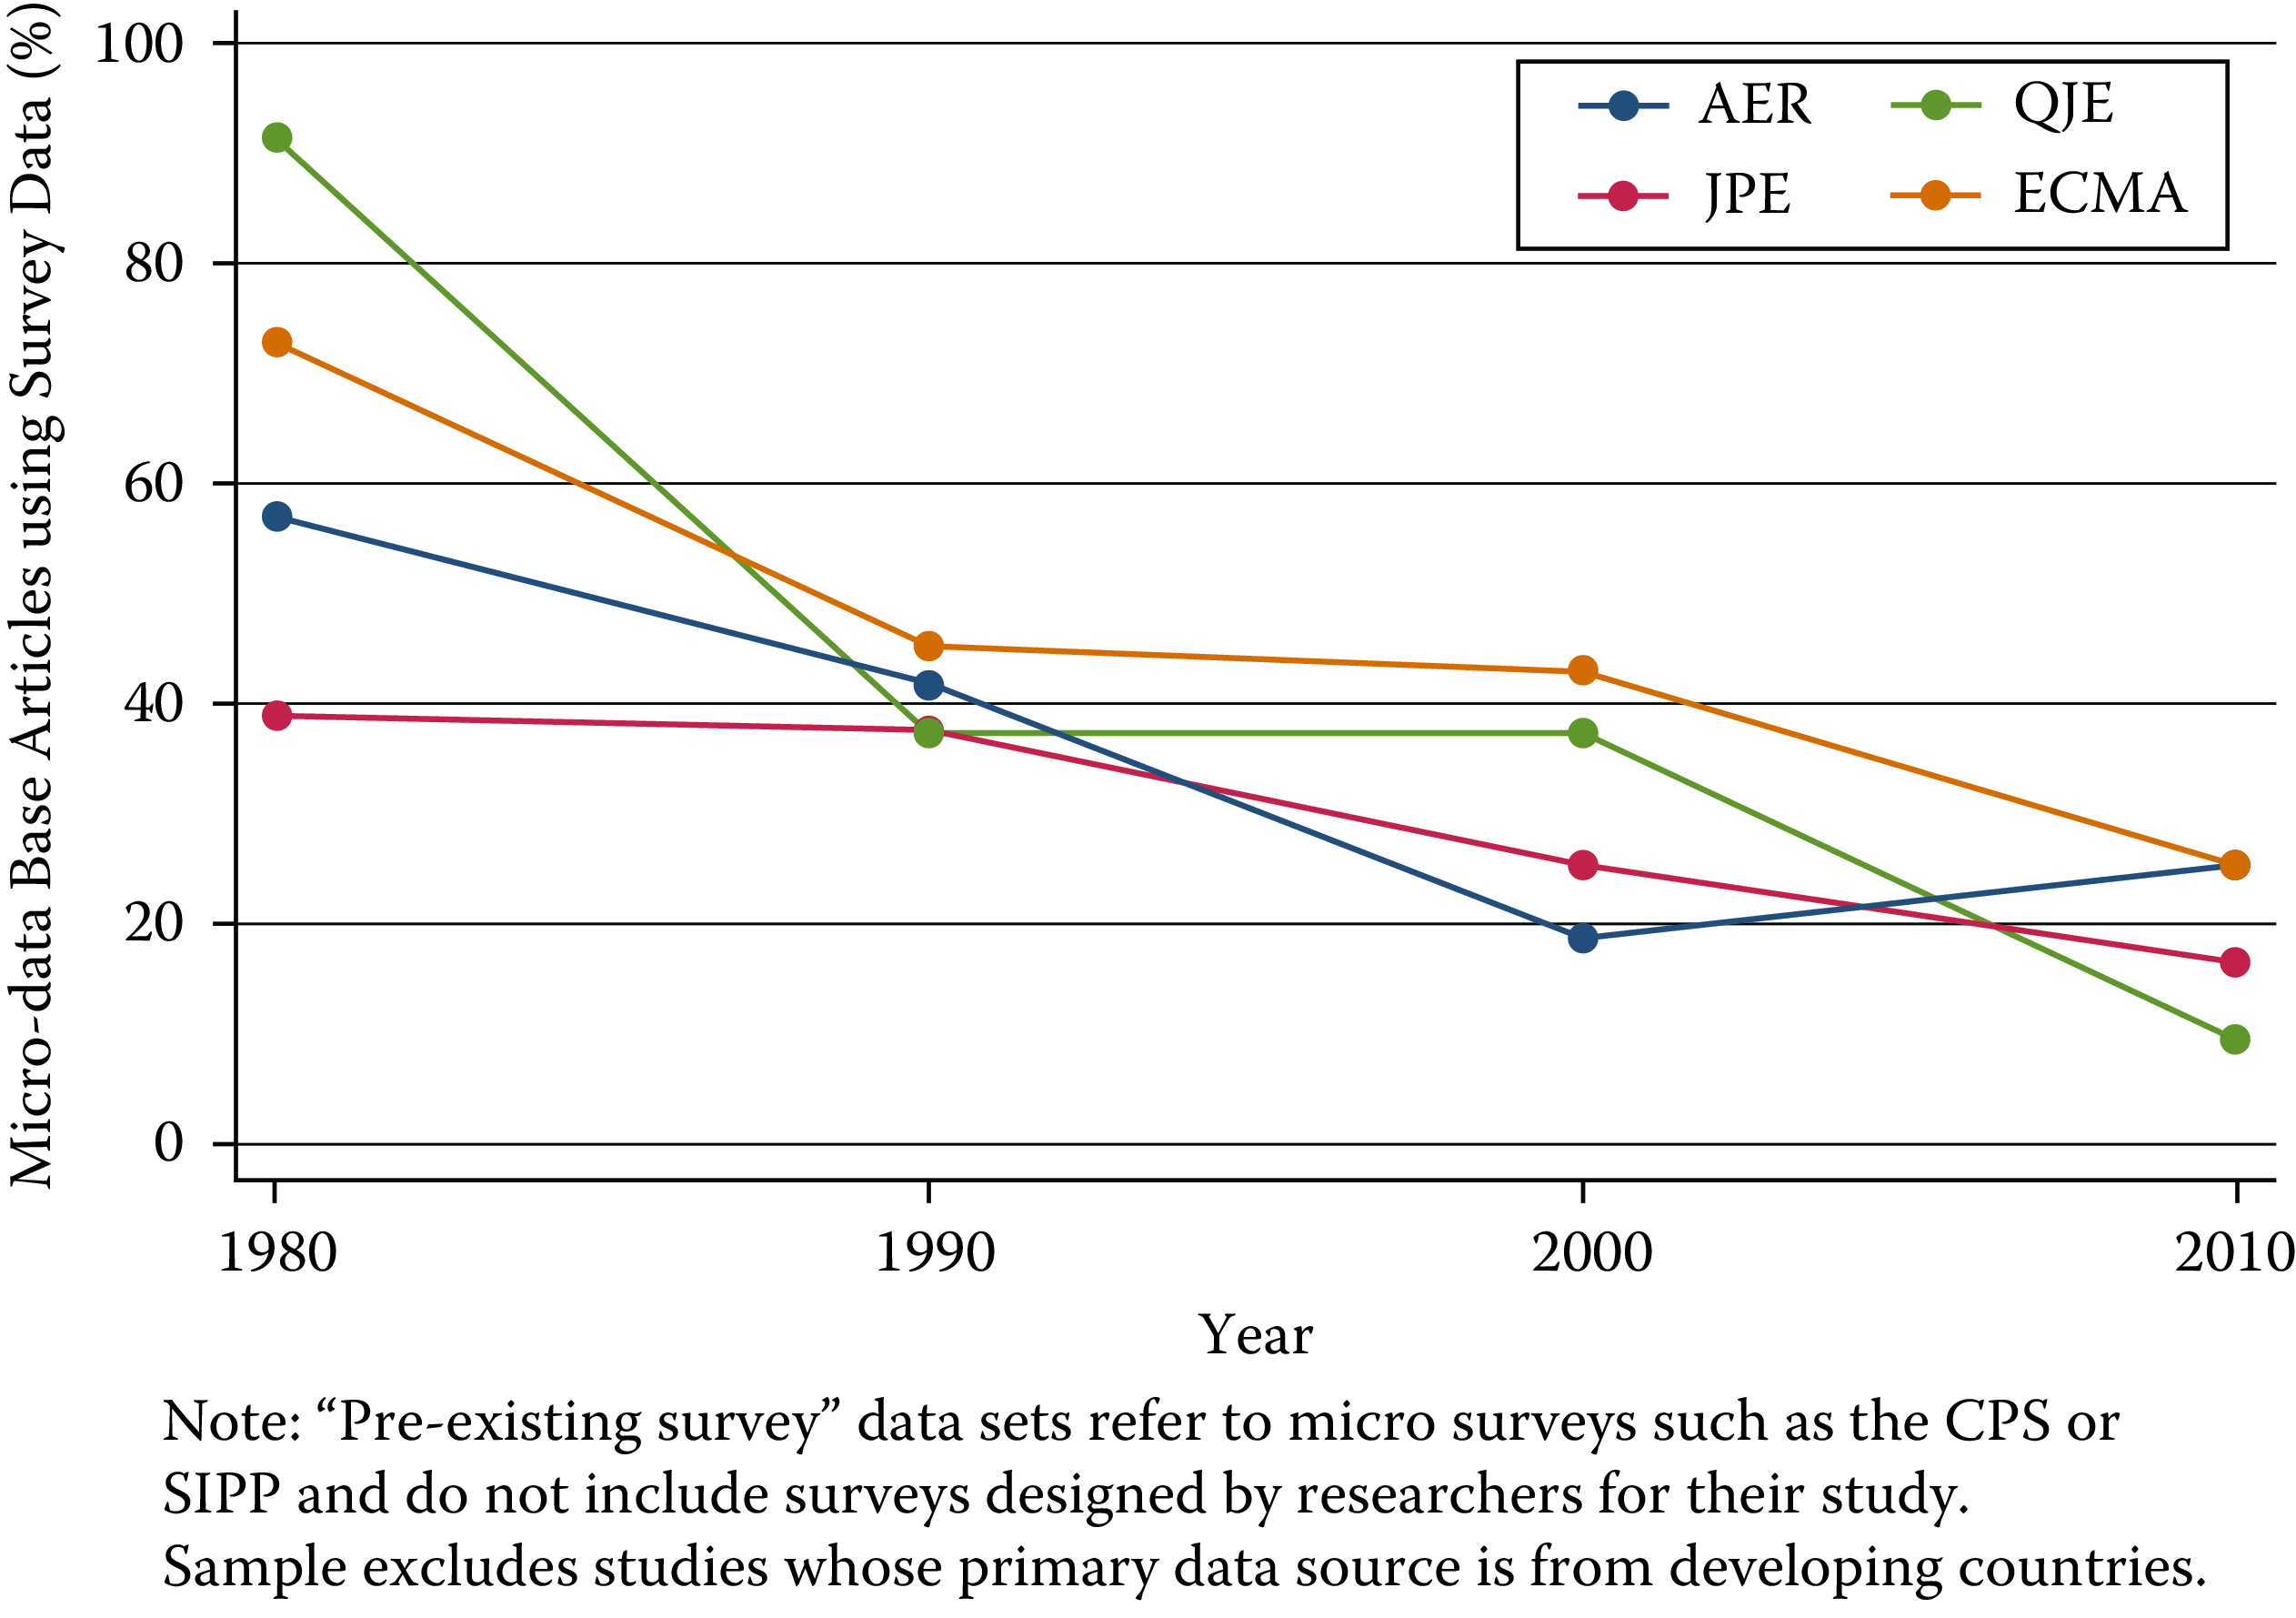 Use of pre-existing survey data in publications in leading journals, 1980--2010 [@Chetty2012]